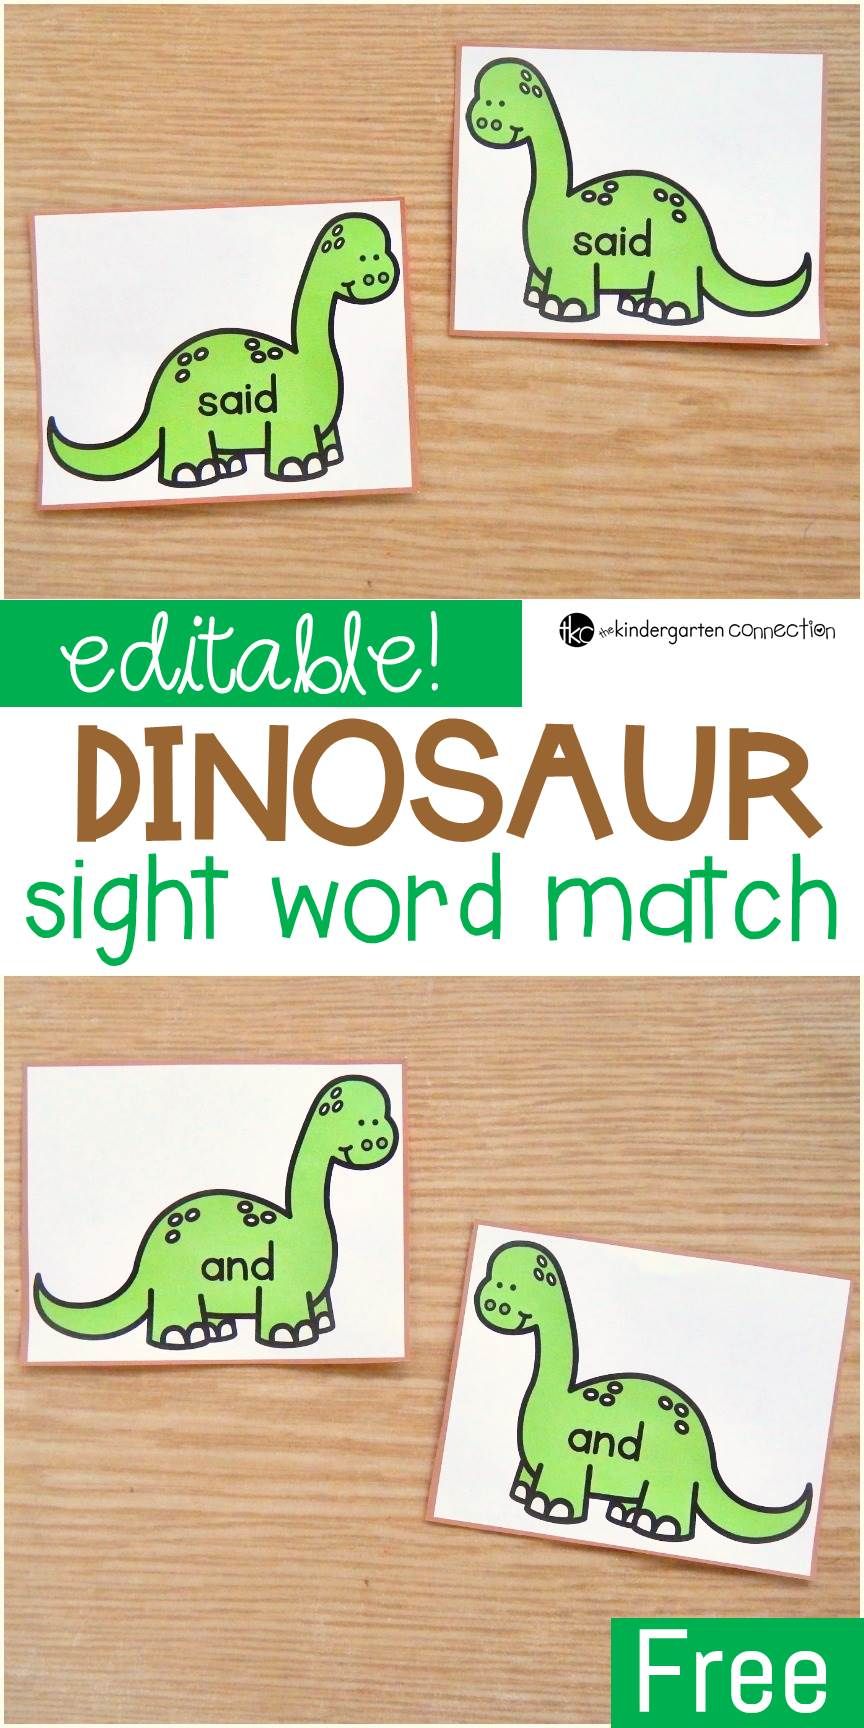 This editable sight word dinosaur game is a simple sight word matching game that works with ANY word list - so fun for Kindergarten or 1st grade word work!